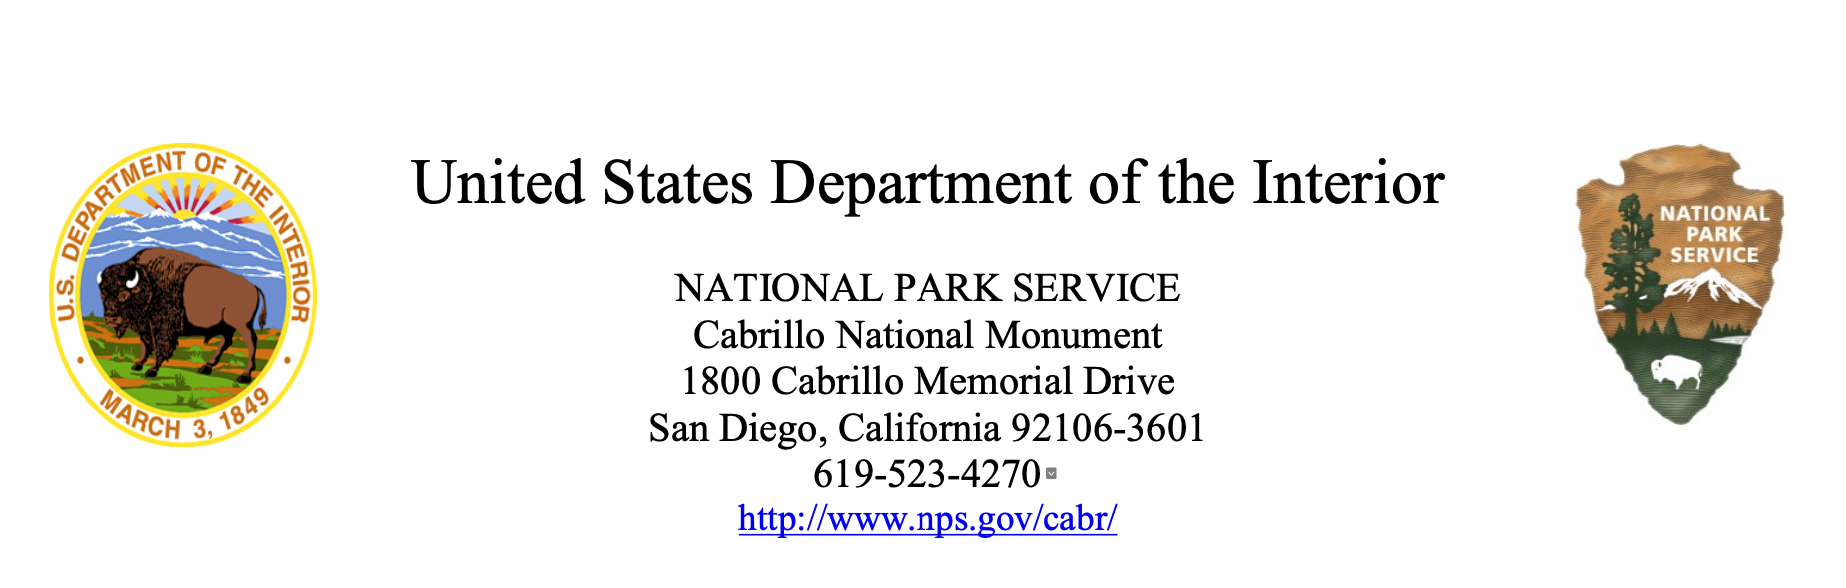 Mask Mandate Header displaying signature of Park Superintendent on February 5, 2021